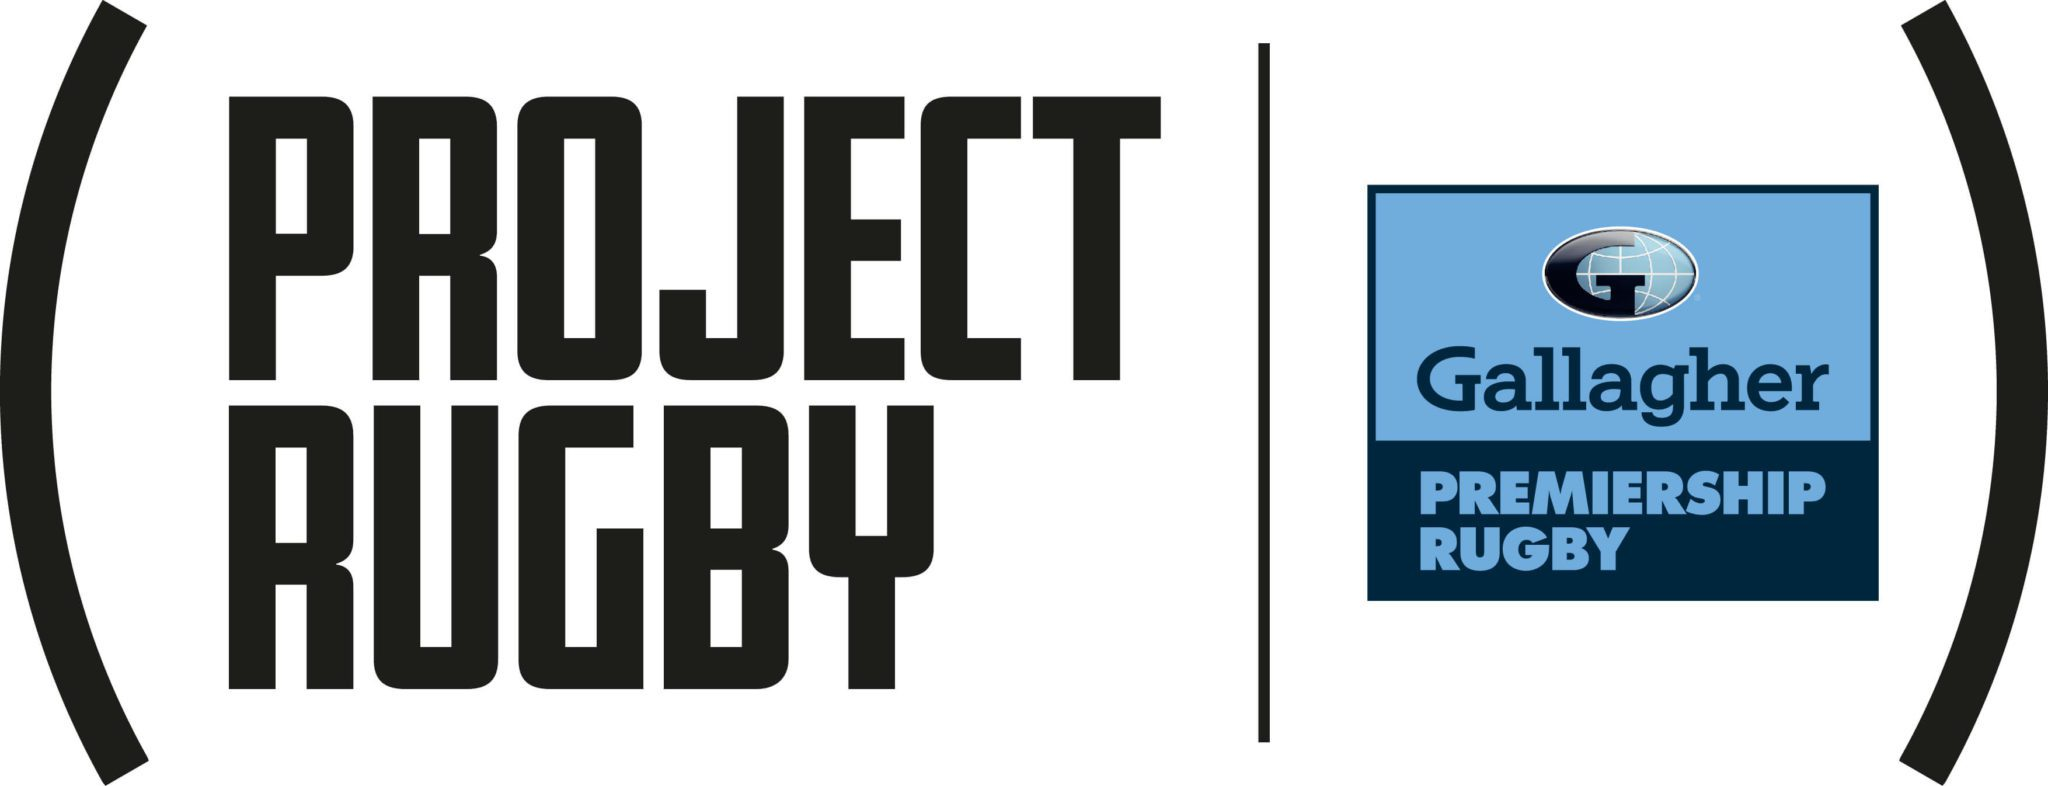 Rugby - Project Rugby